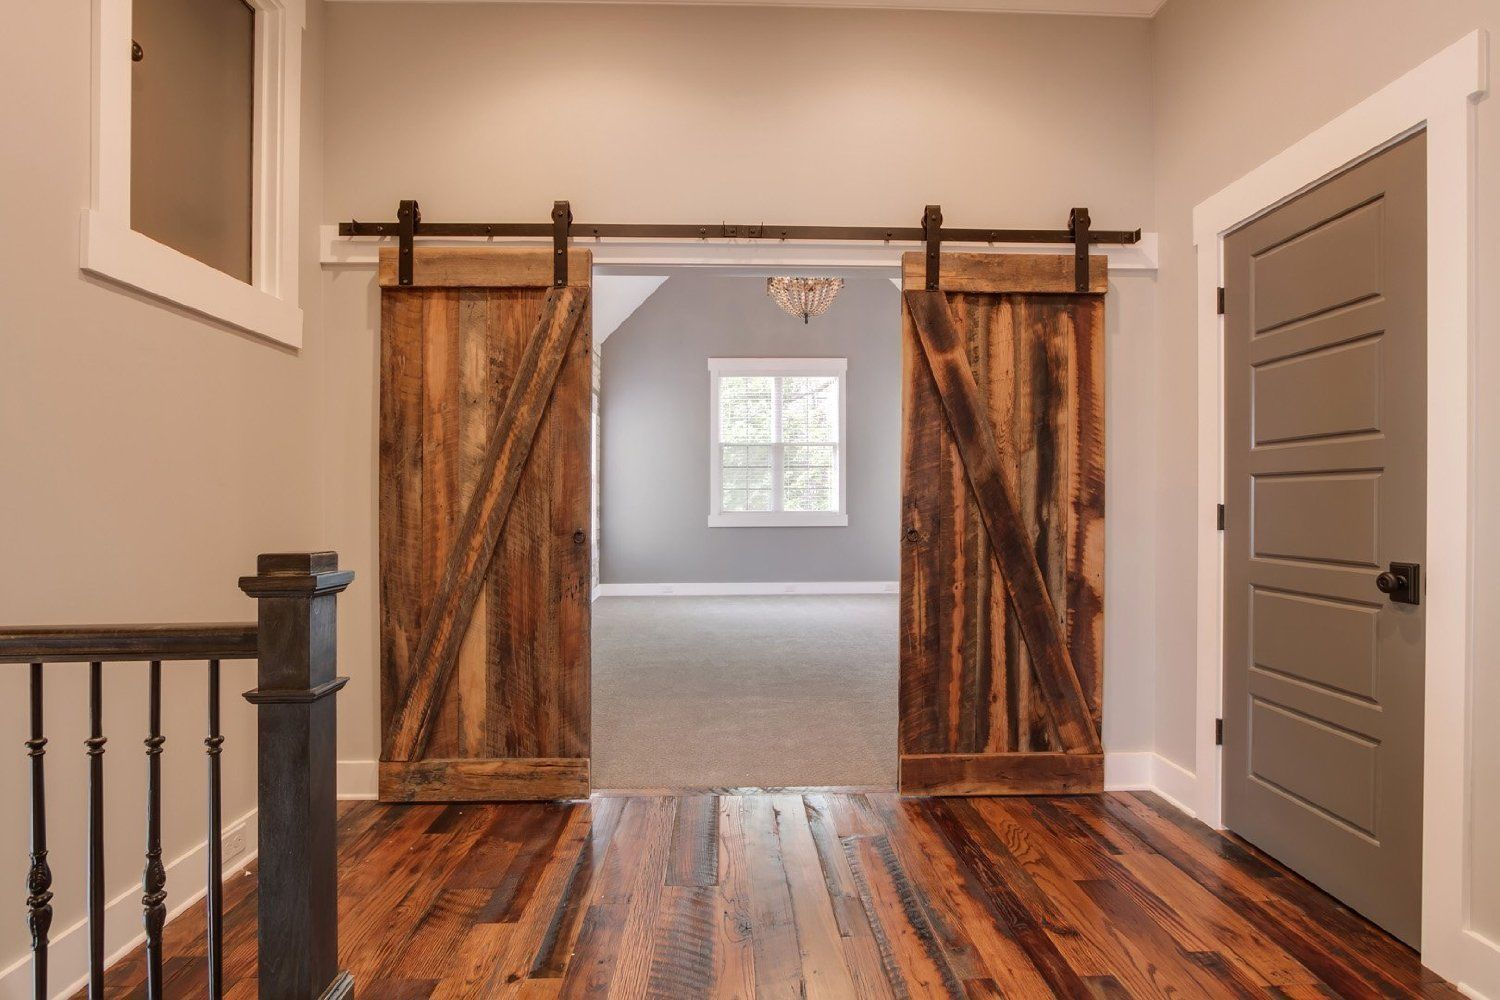 Details About Double Sliding Barn Door Hardware Rustic Black Barn Sliding Track 10 12 13ft Barn Door Designs Door Design Images Double Barn Doors